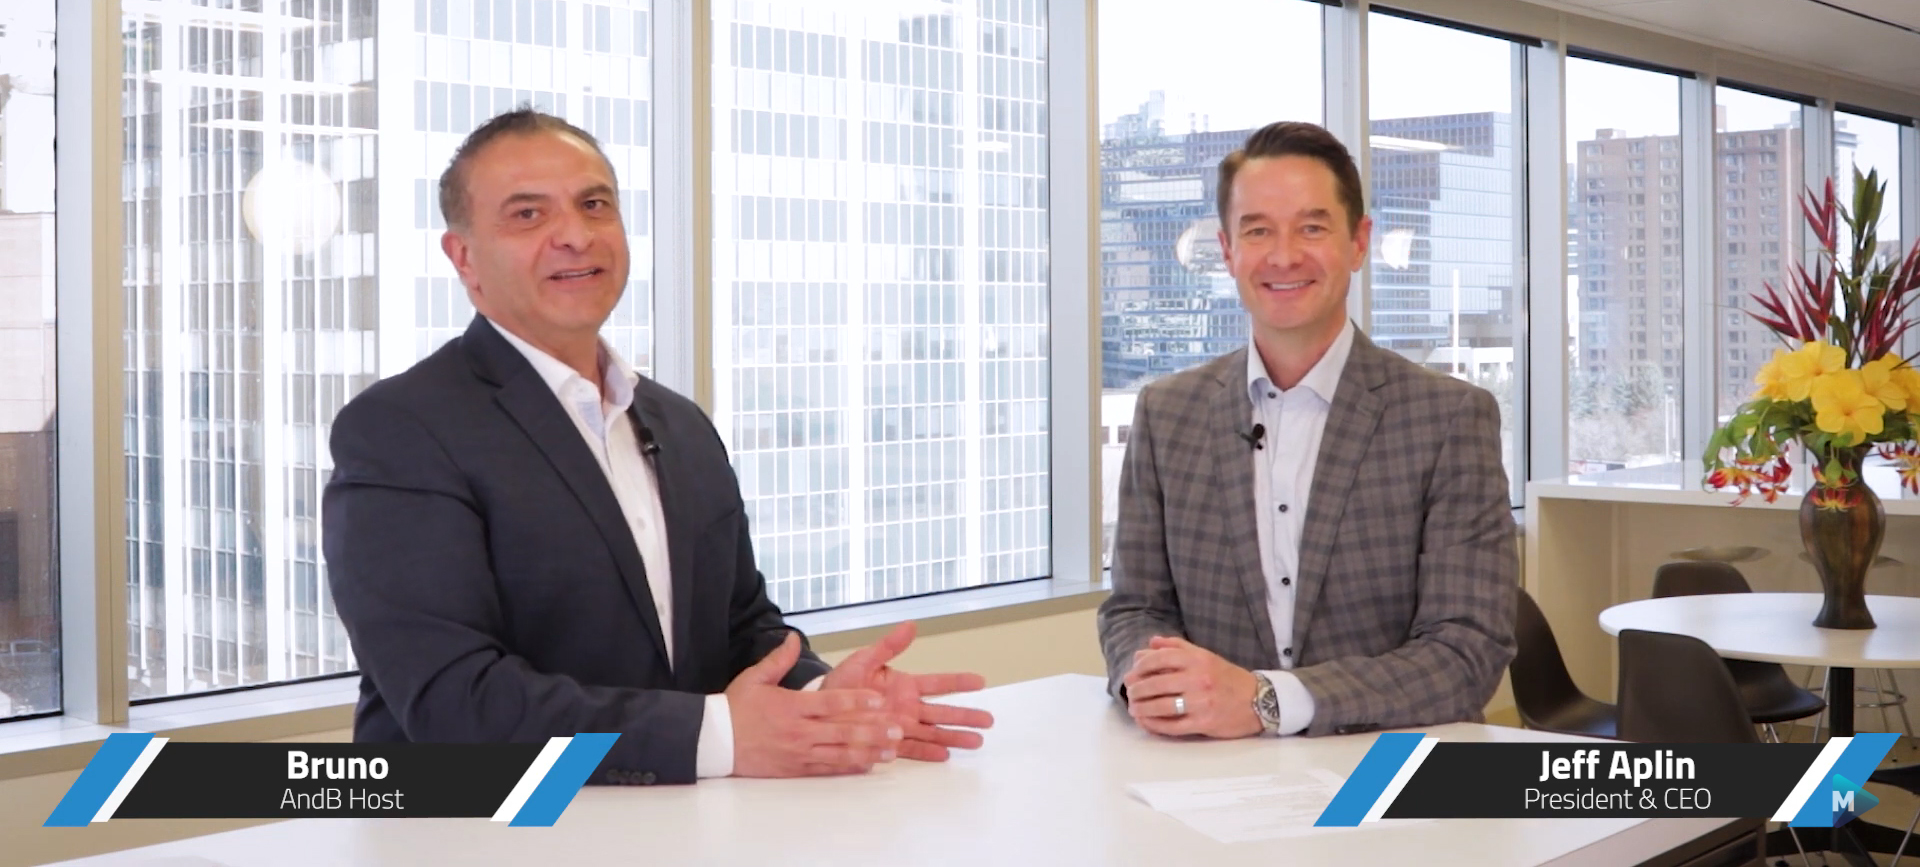 Jeff Aplin Discusses Hiring Trends in Staffing on &B | Four Episodes